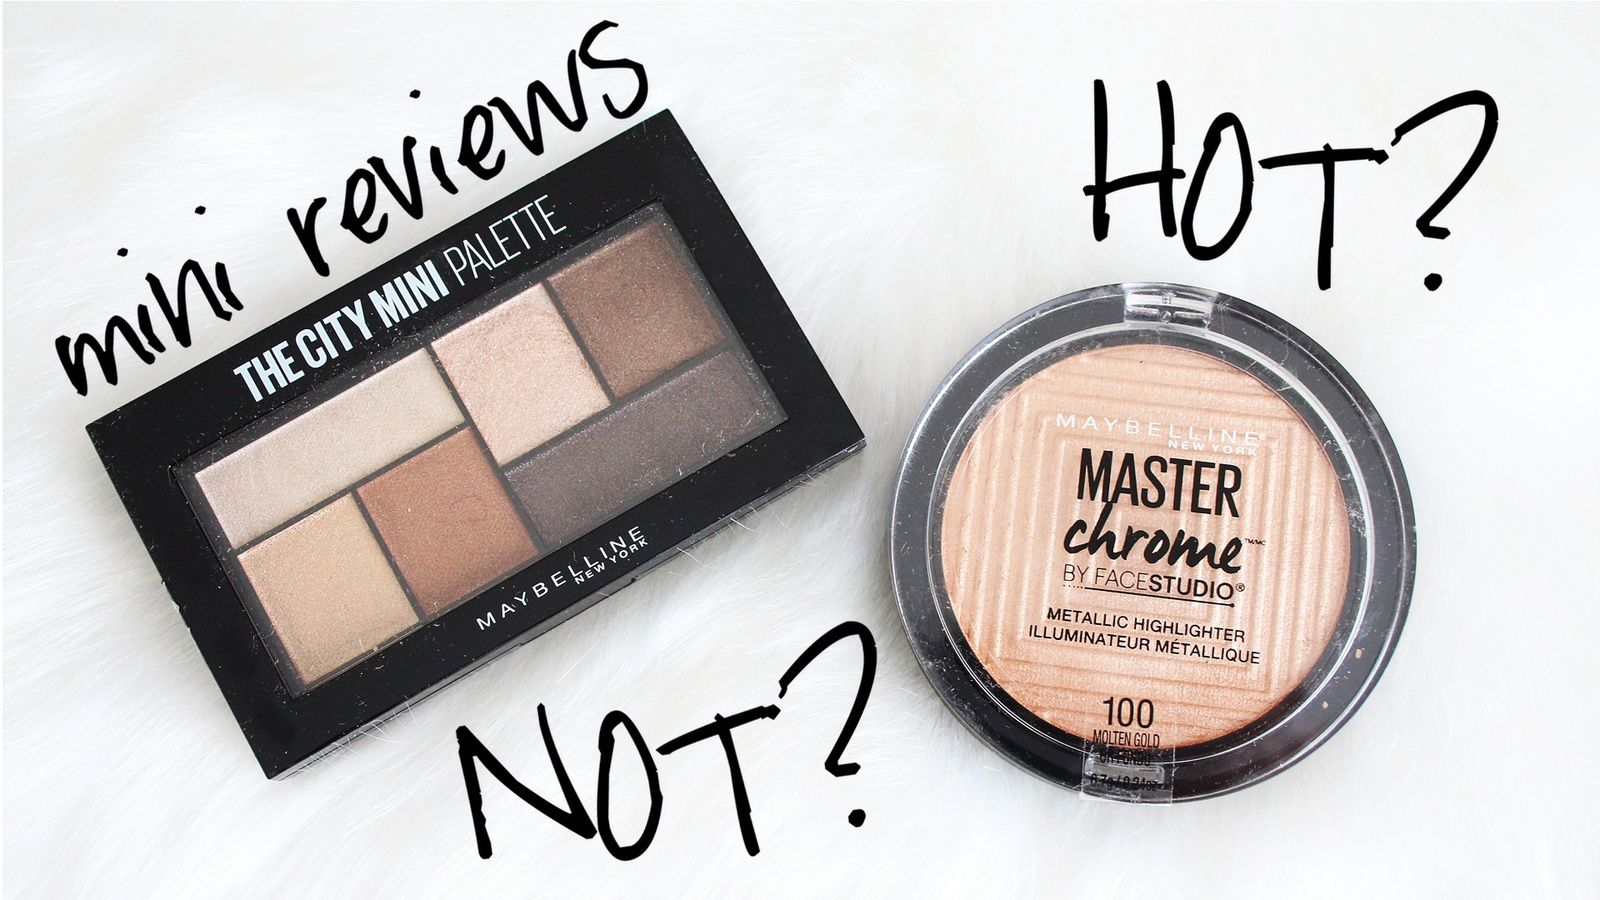 NEW Maybelline Makeup! HOT OR NOT?